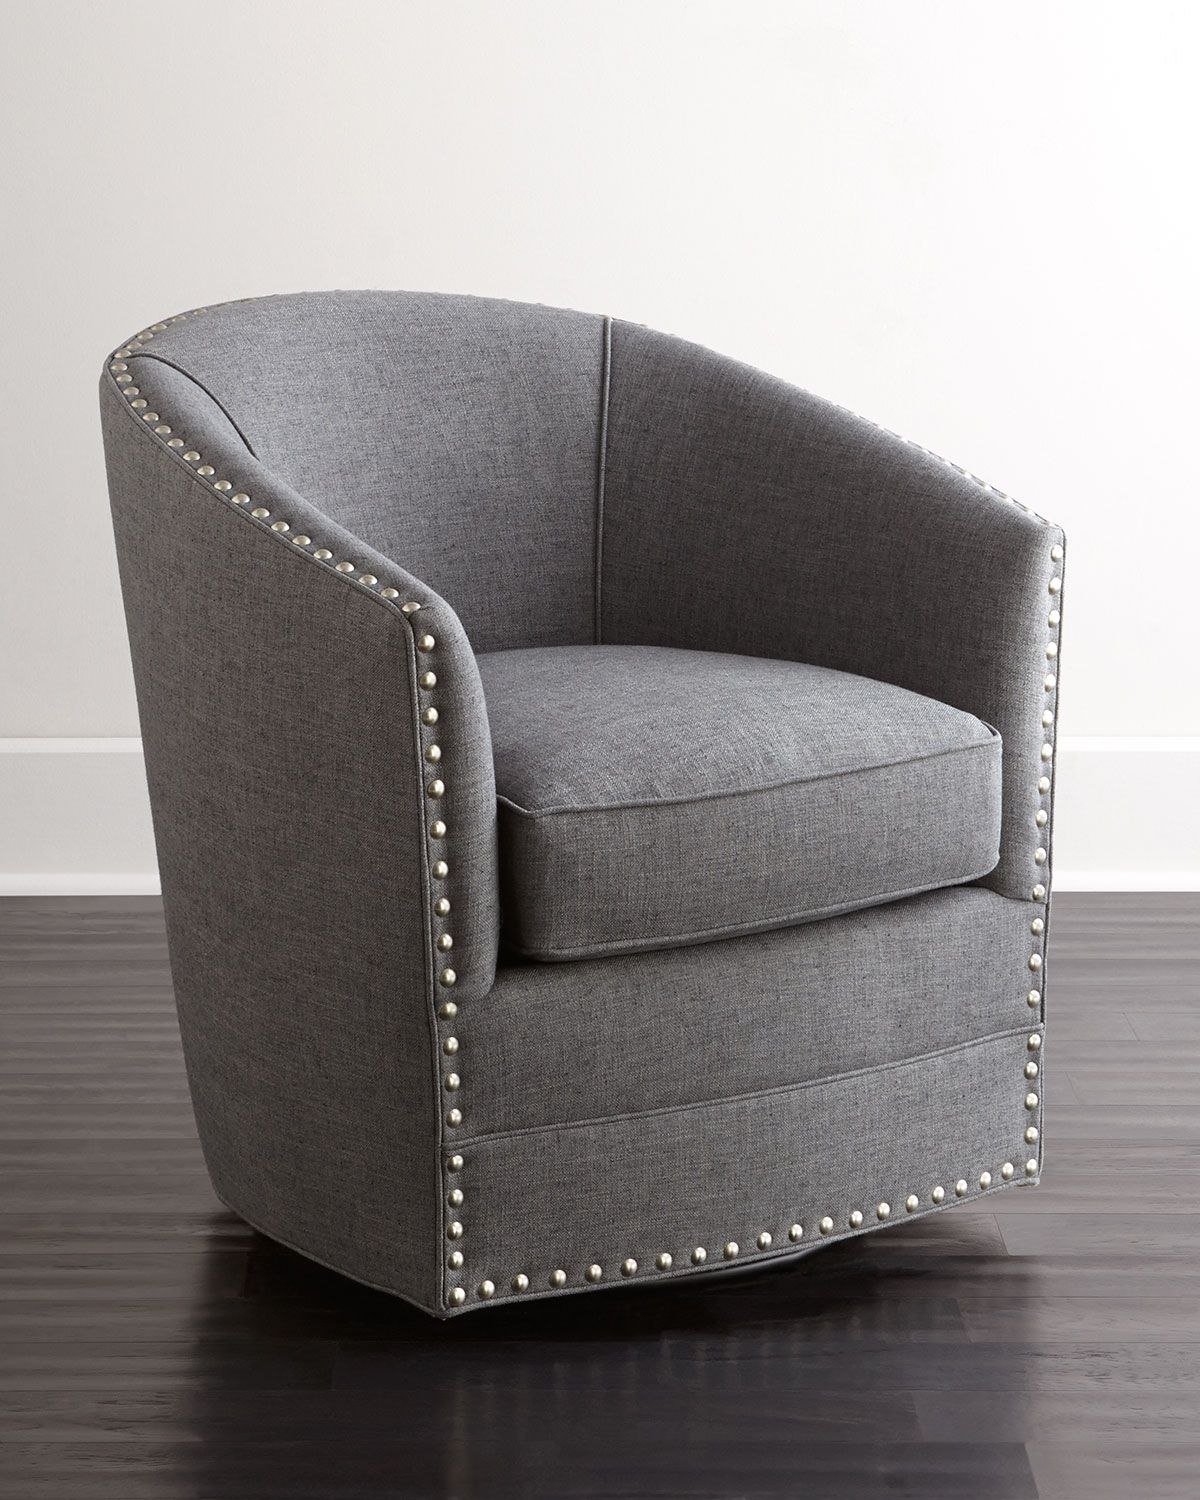 Bryn St. Clair Swivel Chair Grey swivel chairs, Swivel